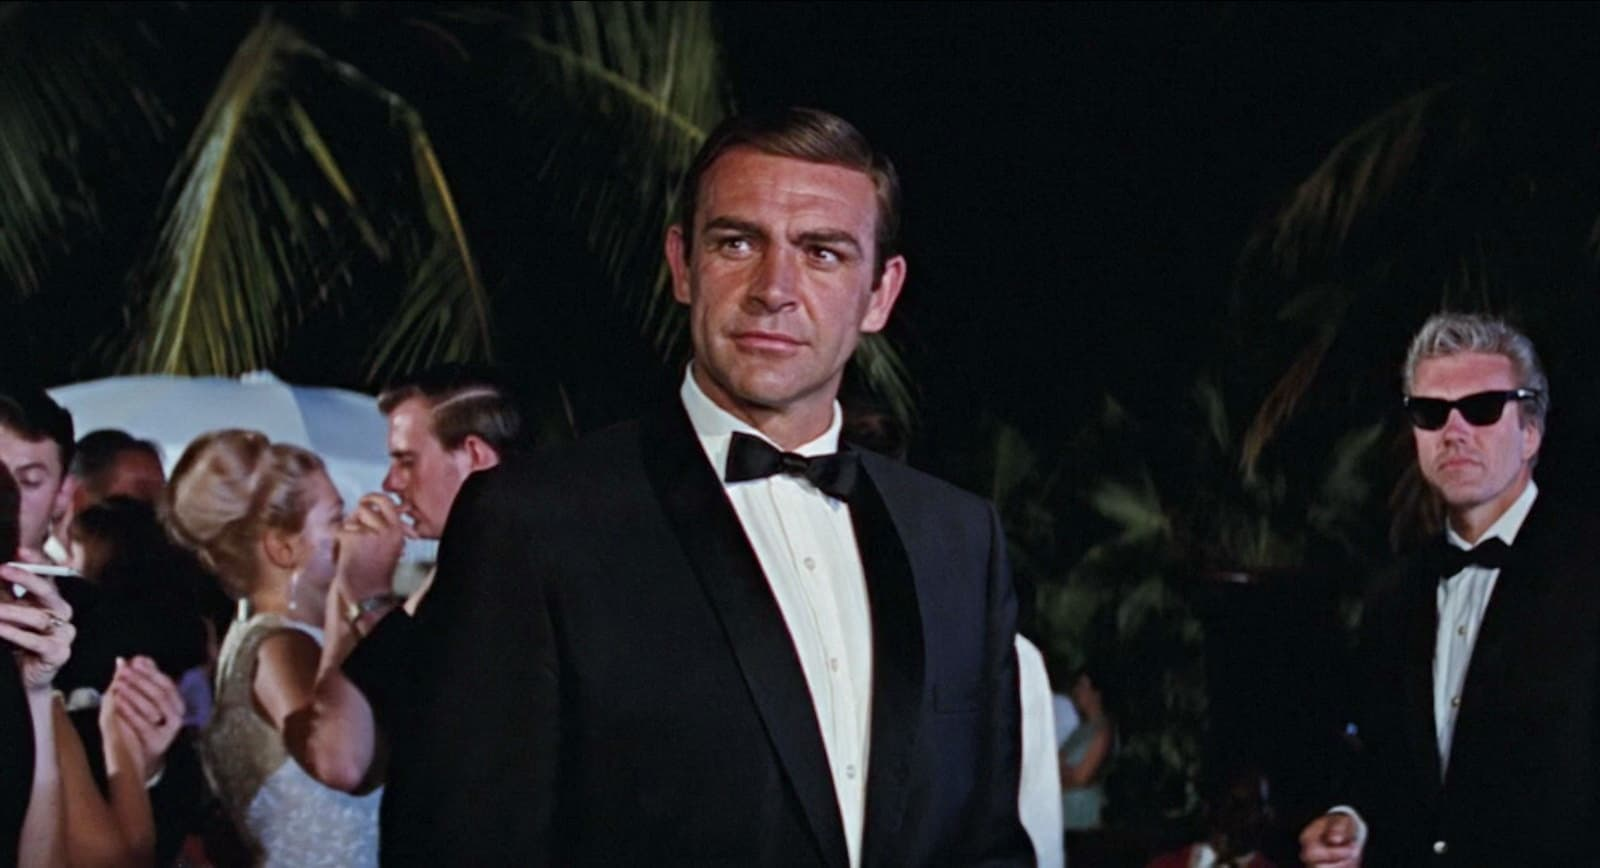 http://www.gentlemansgazette.com/wp-content/uploads/2012/10/Sean-Connery-in-Slim-Shawl-Collar-in-Thunderball.jpg